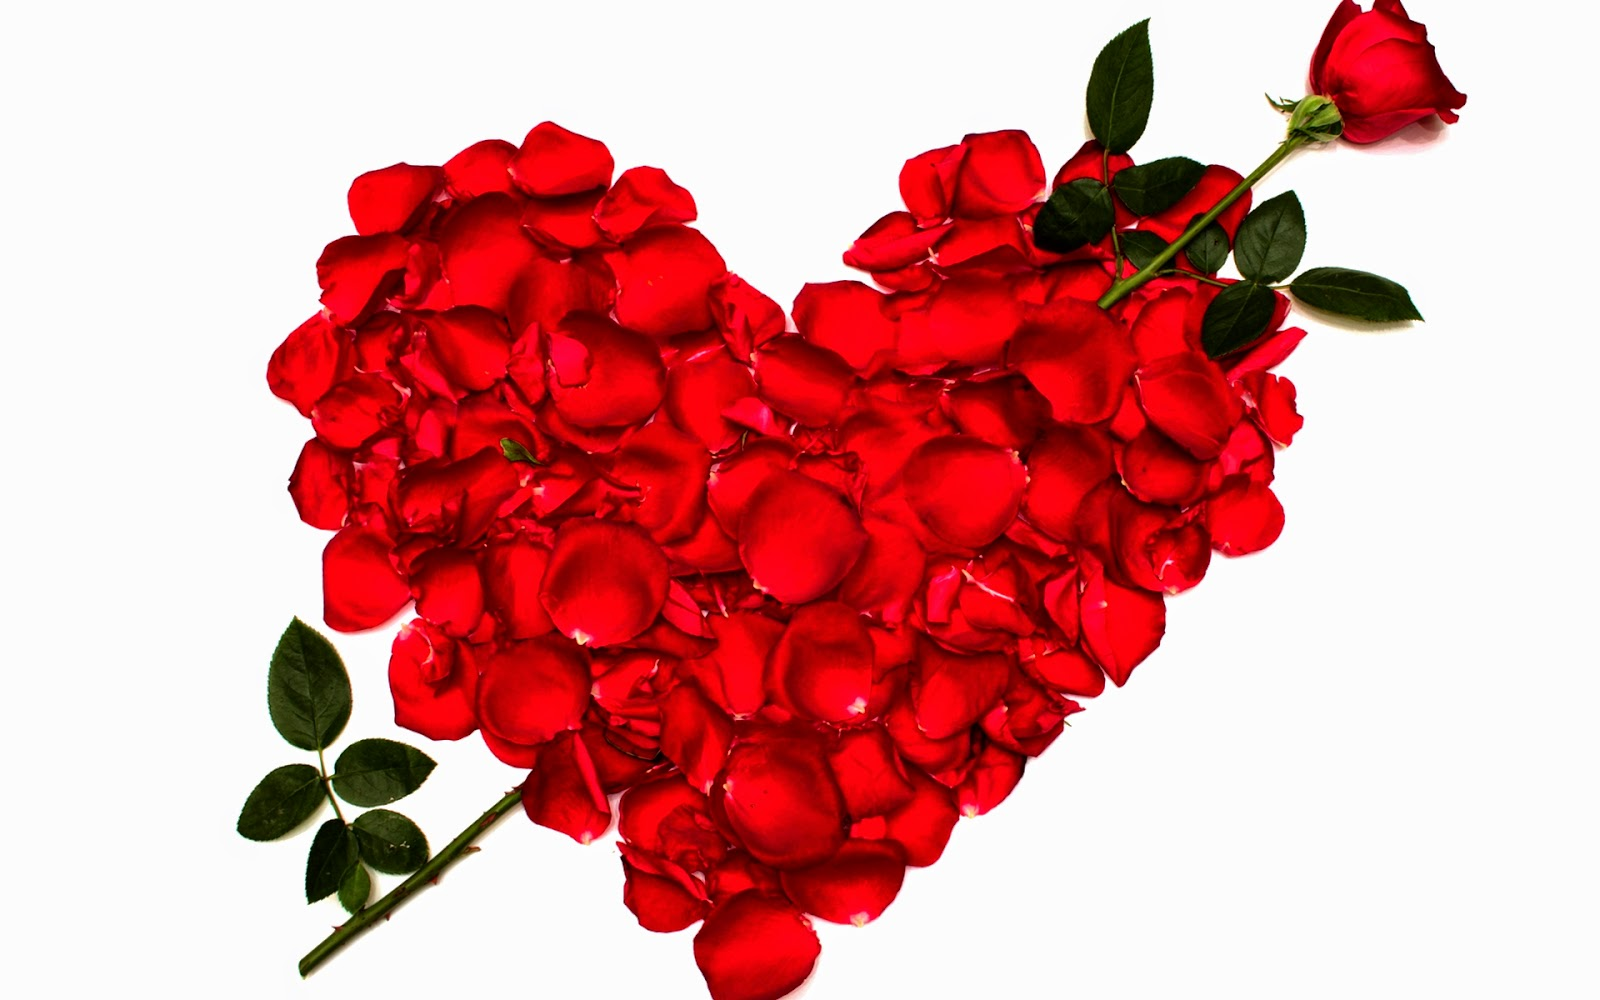 Red Heart Love Live Wallpaper Android Apps On Google - Happy Rose Day My Love - HD Wallpaper